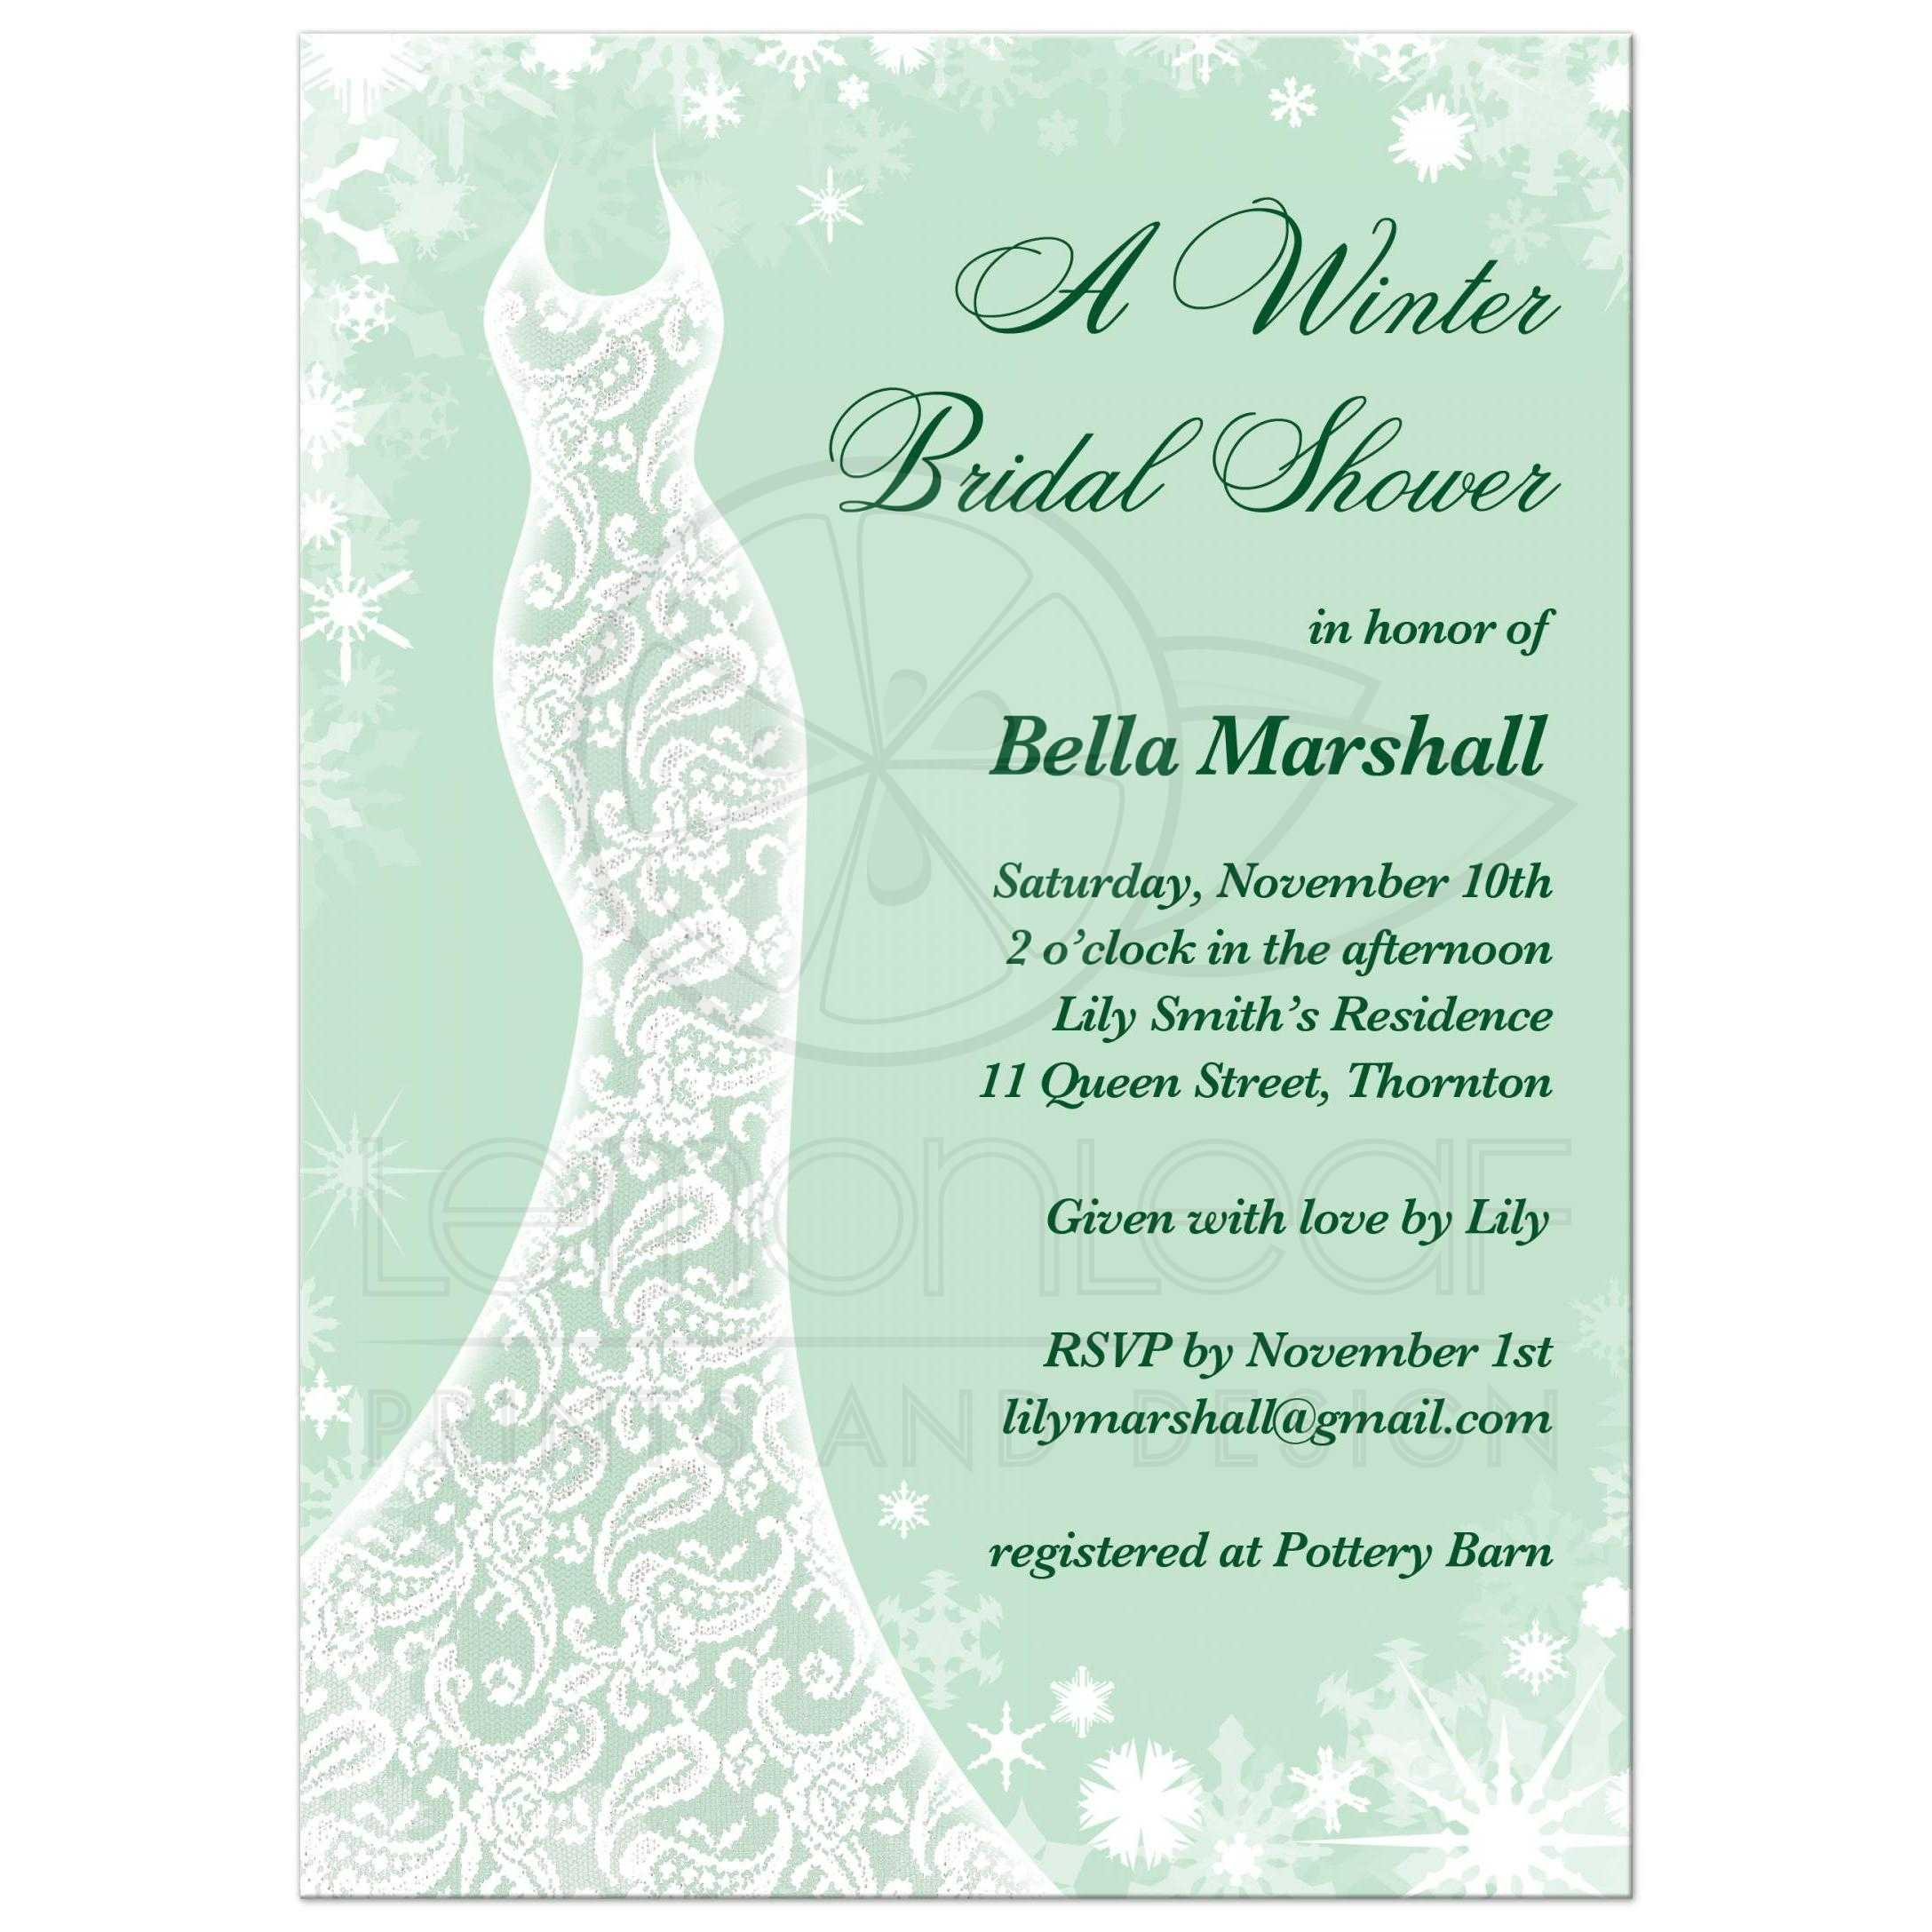 Snowflakes and a lacy wedding dress decorate this mint green winter bridal  shower invitation. 784765d5d